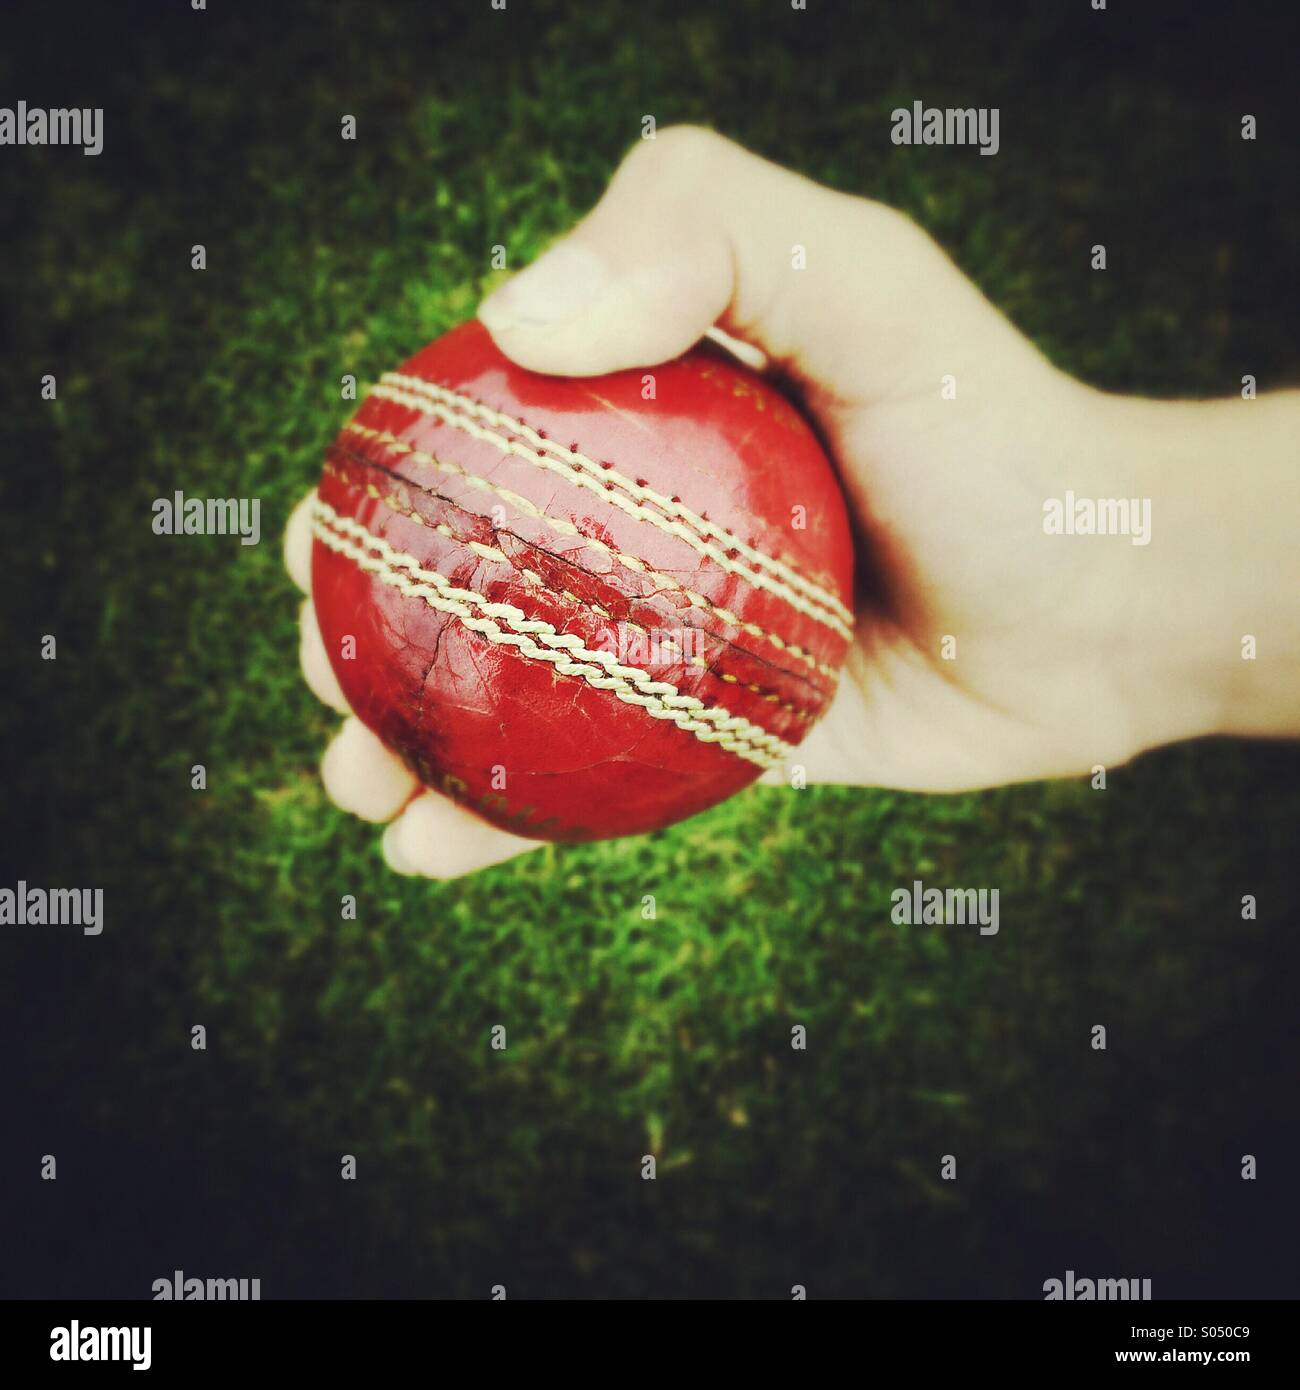 Holding a cricket ball - Stock Image